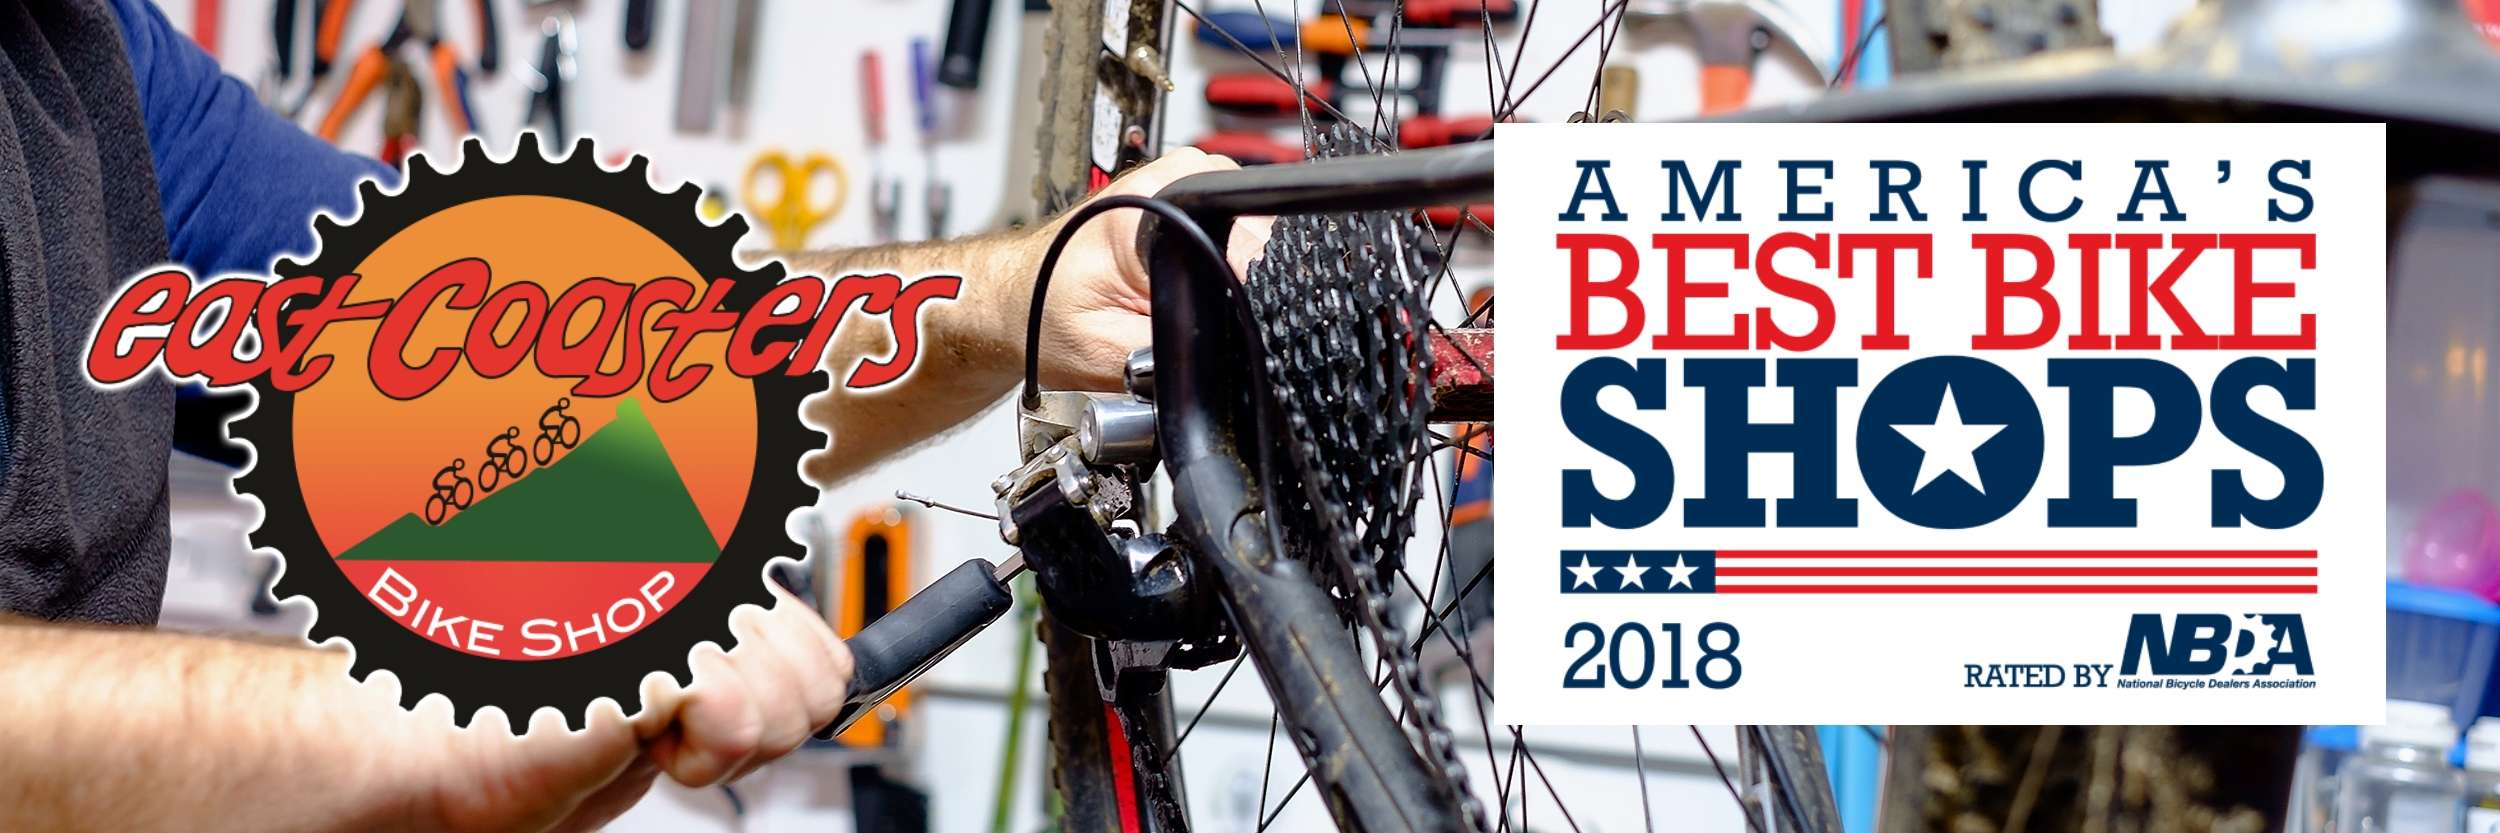 We're honored to have been voted one of America's Best Bike Shops by the National Bicycle Dealer's Association